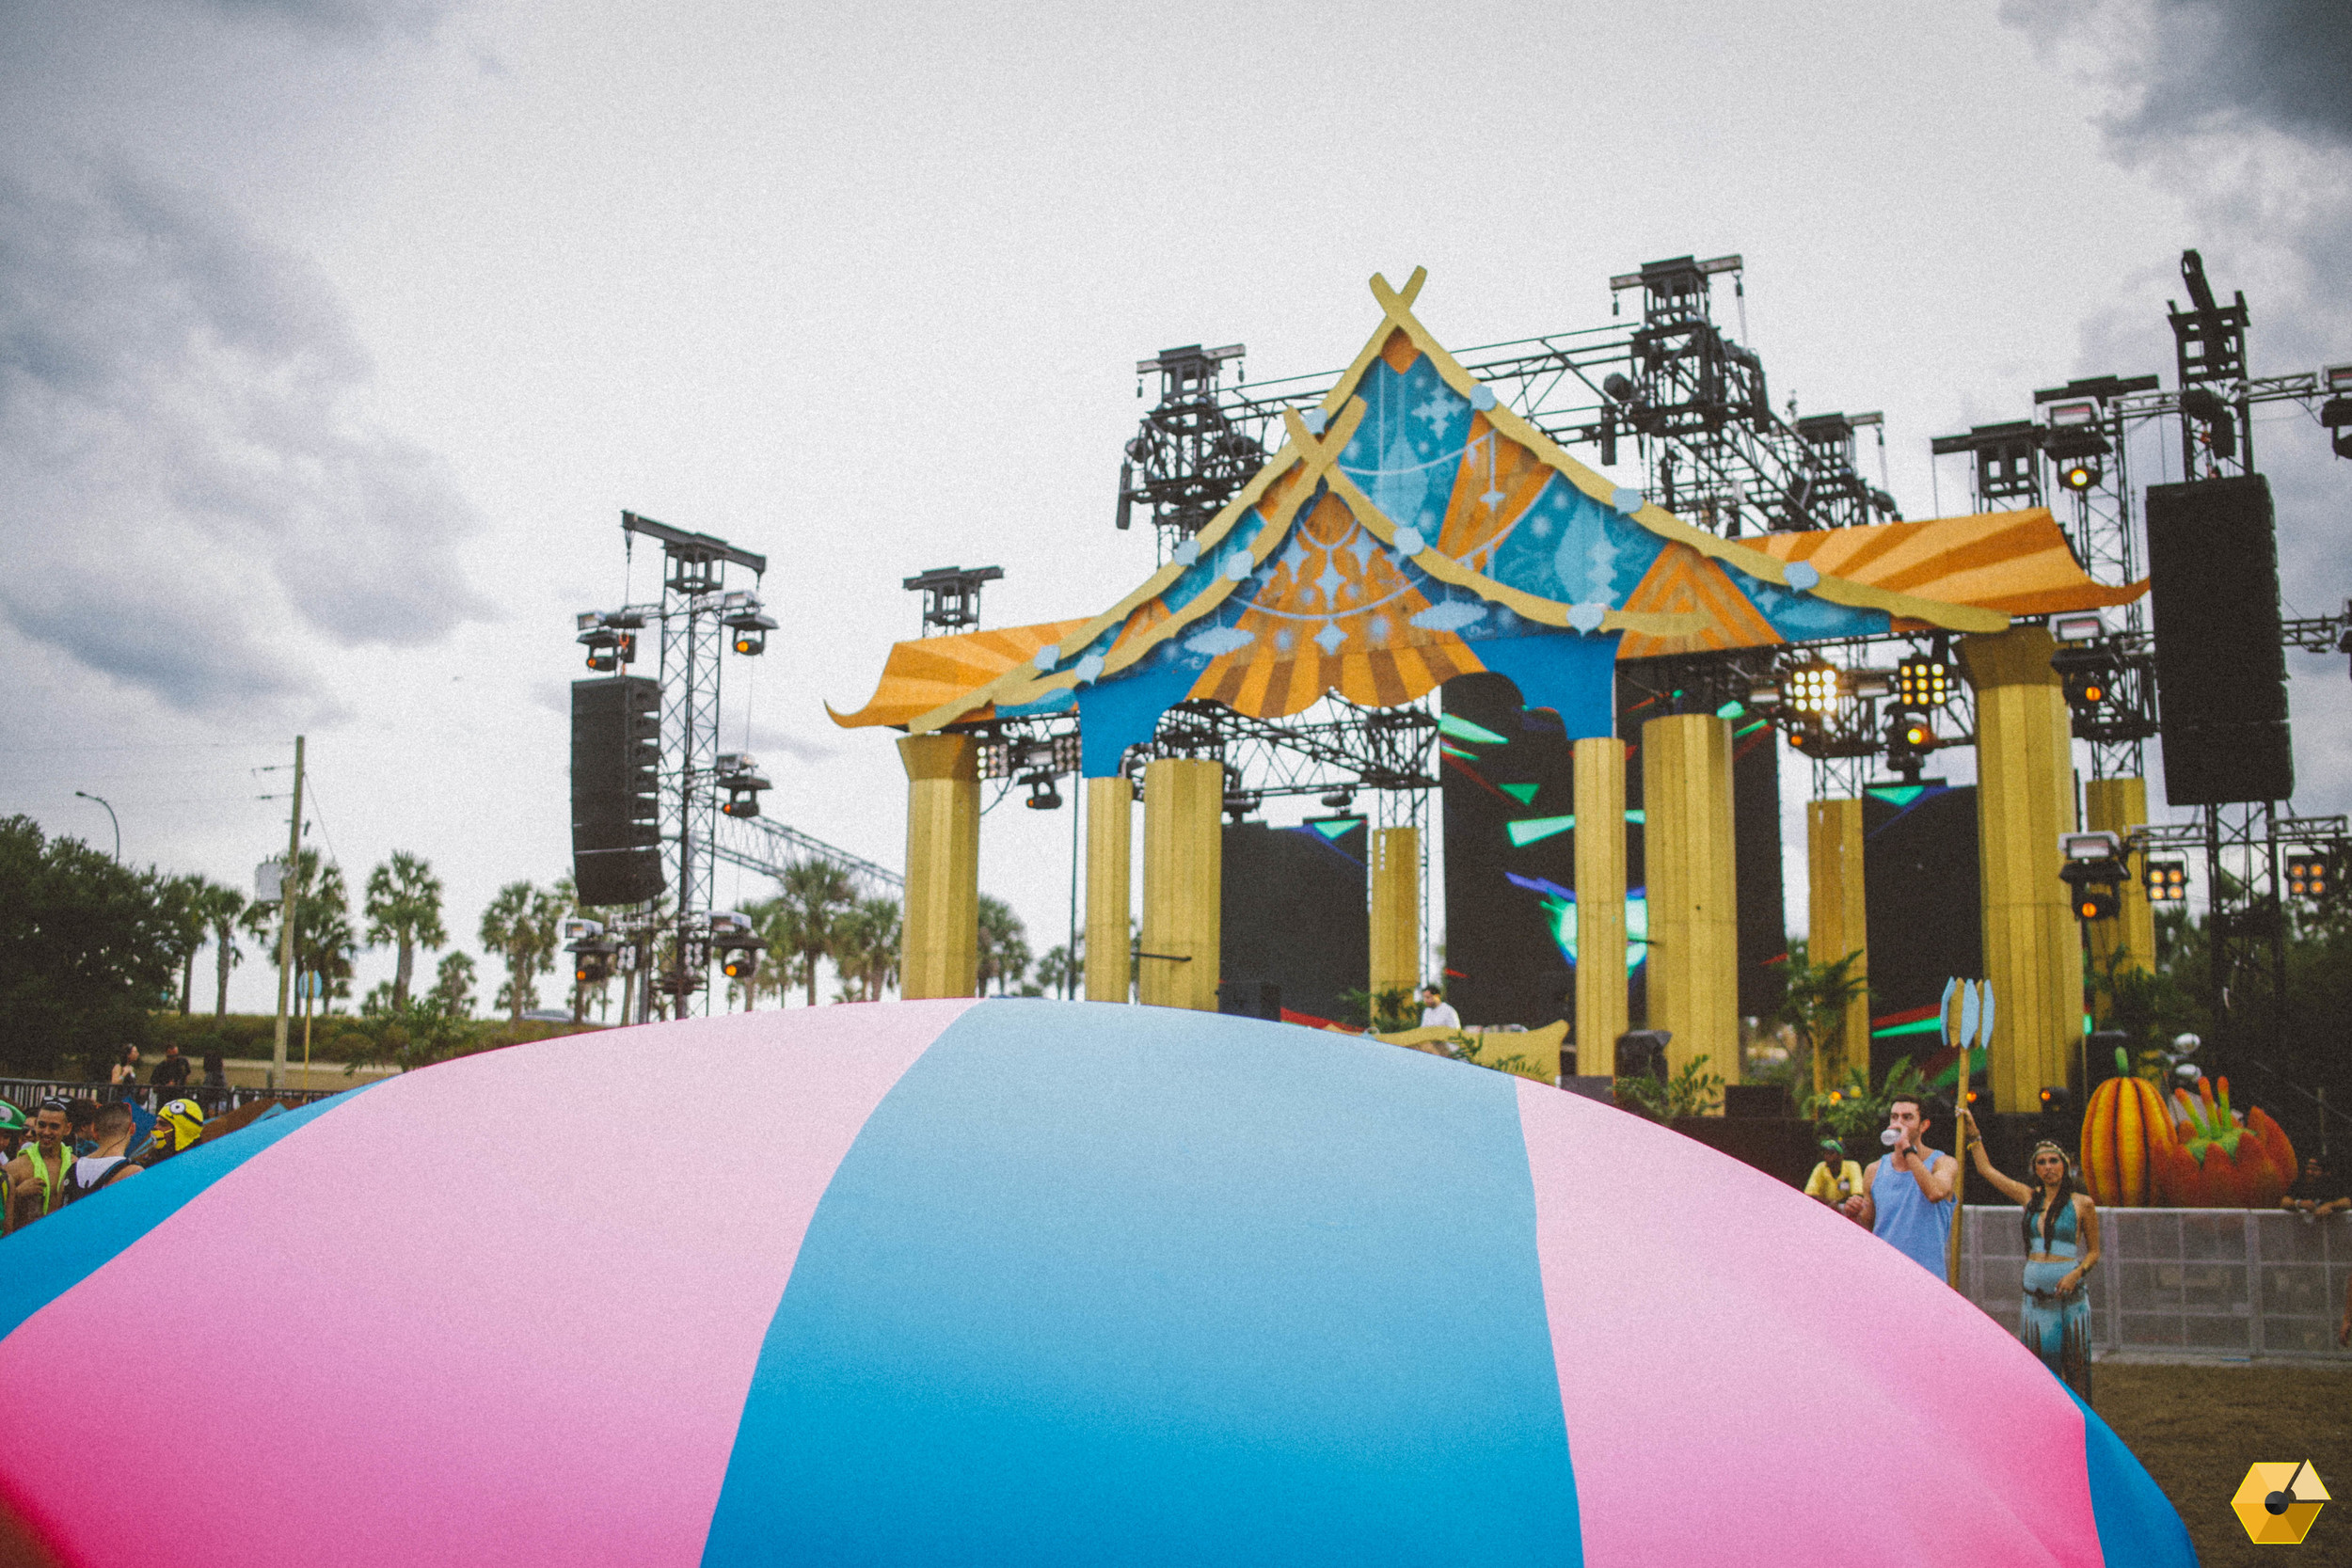 Playing with our huge parachute in front of the Neon Garden stage built by the Imagine Nation.